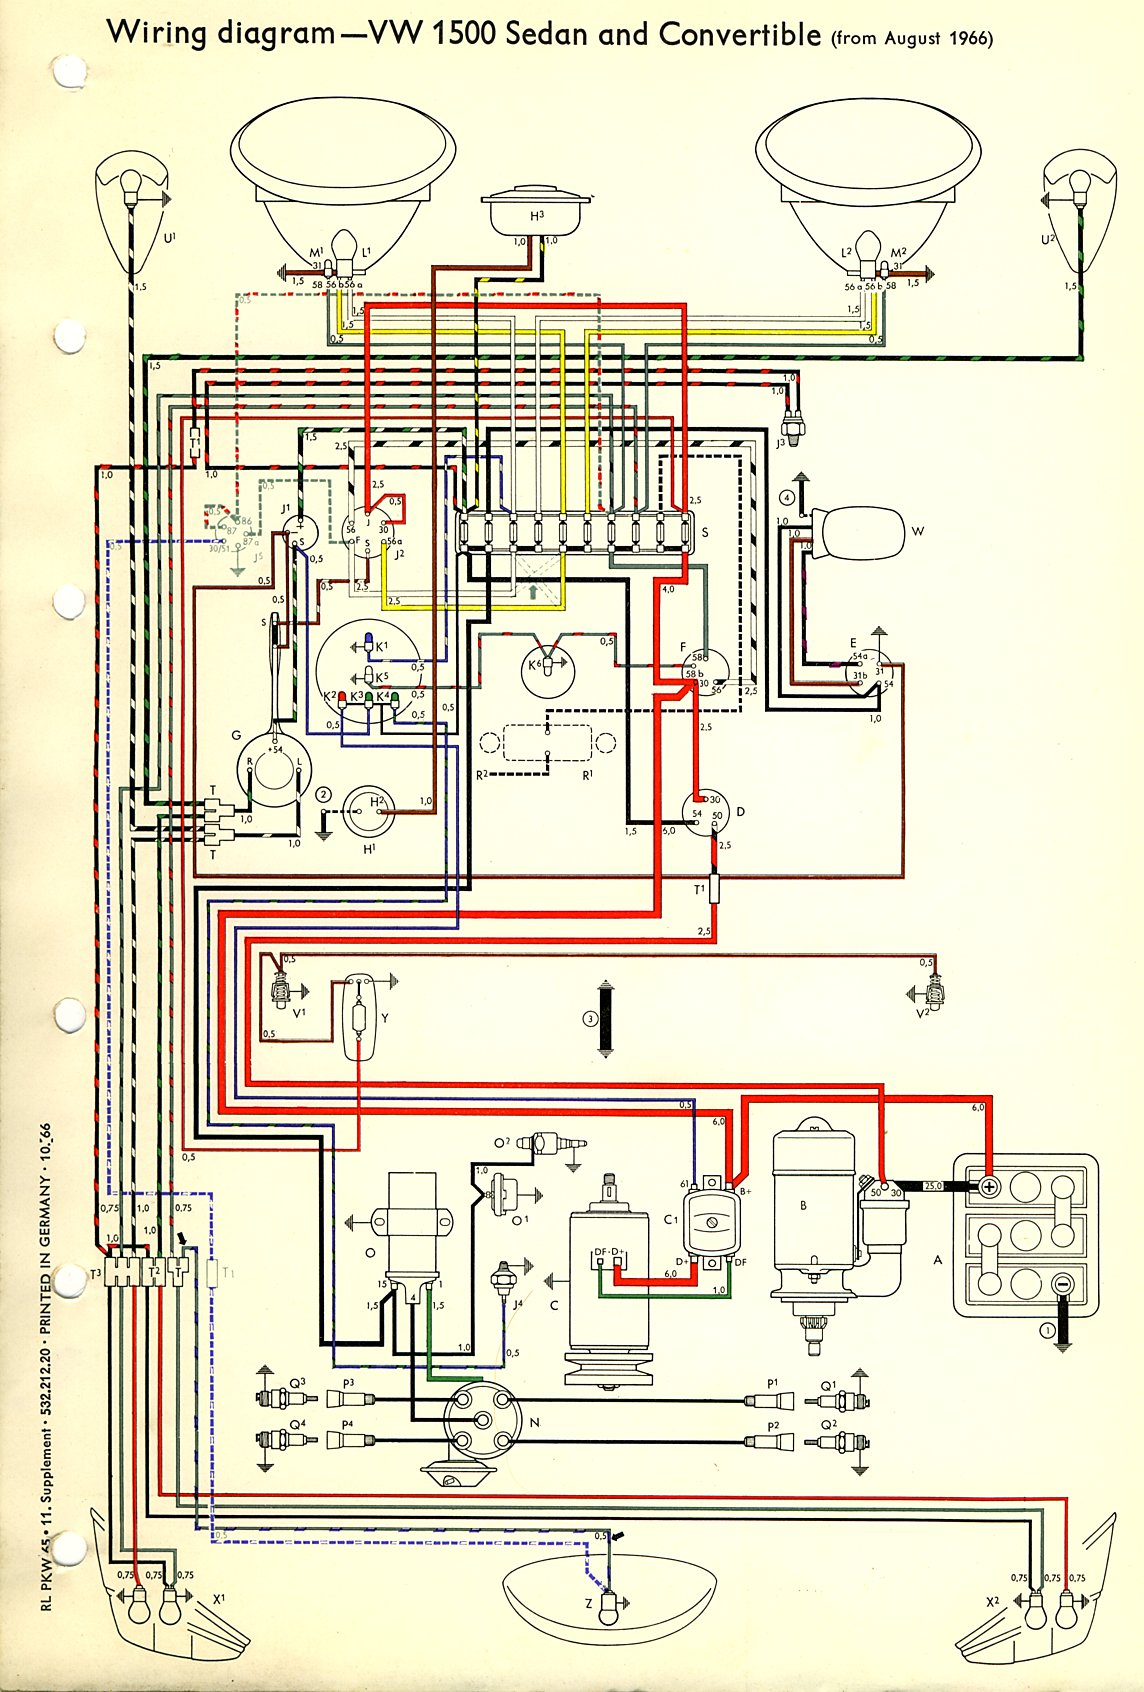 1972 Vw Fuse Diagram Data Schematics Wiring 2002 Cabrio Panel Beetle Electrical Rh Culturetearoom Com Bug Box